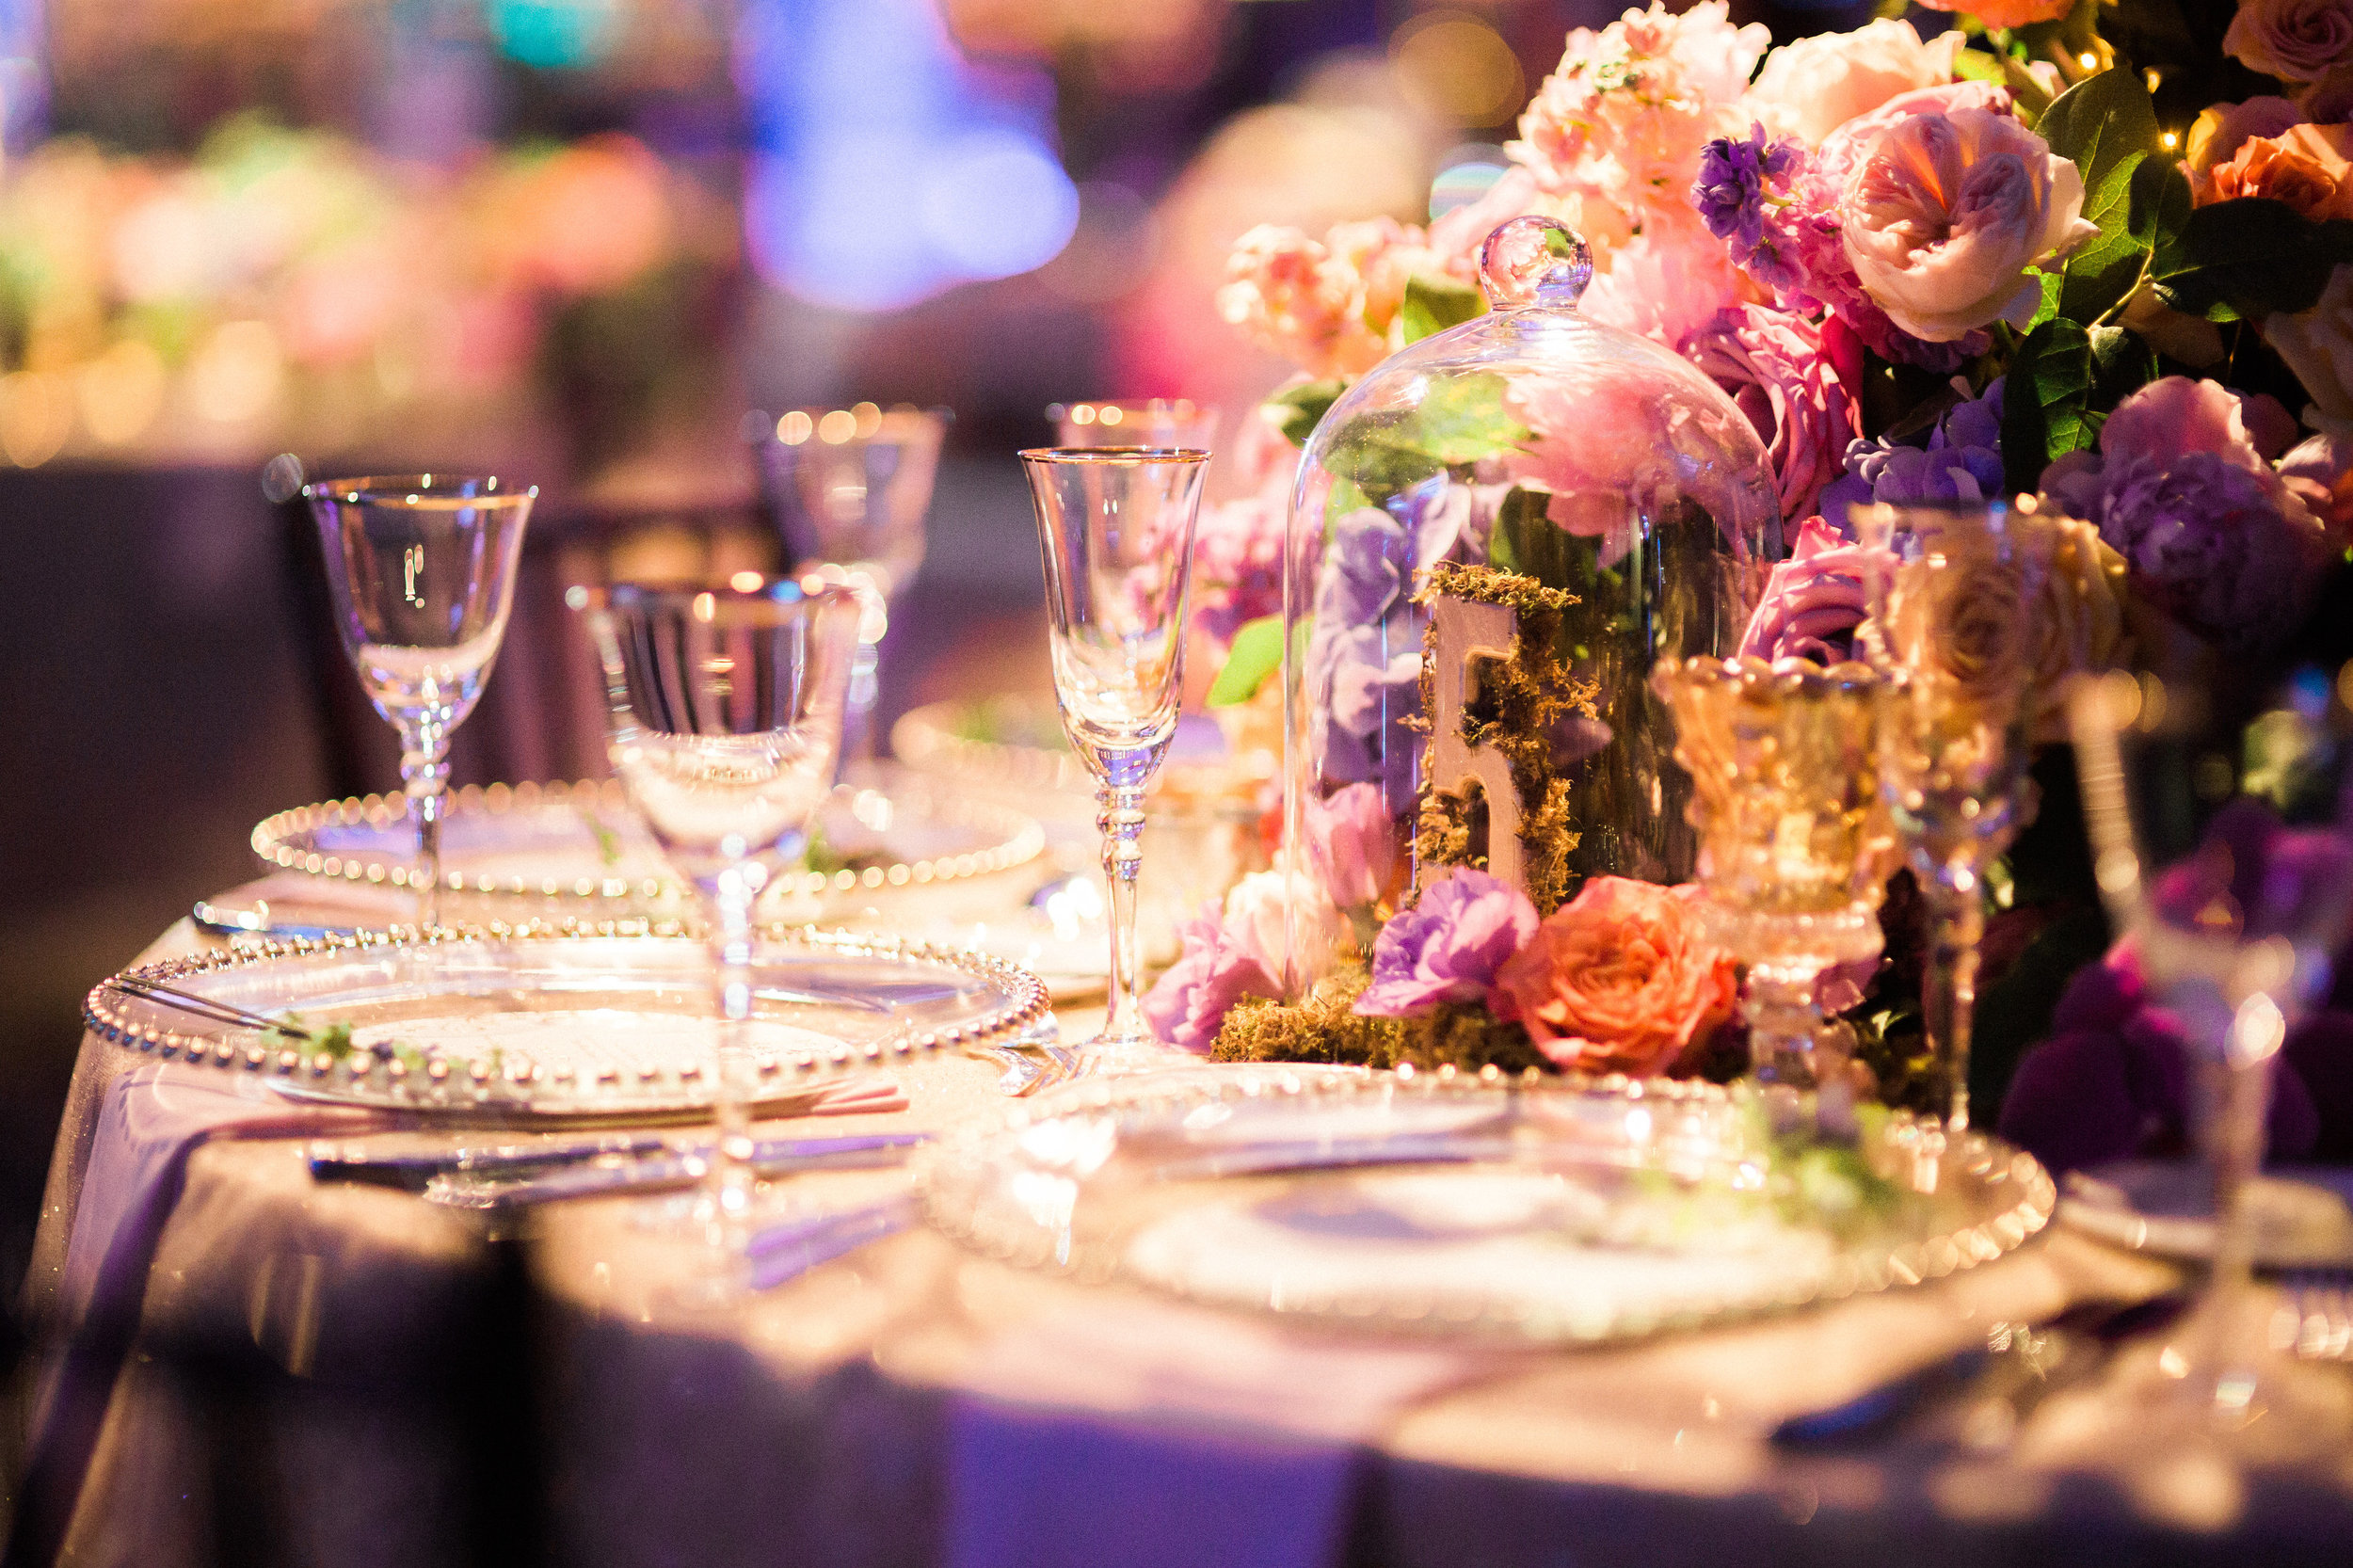 Guest Table Details at Reception at The Hilton Netherland Plaza Hotel Hall of Mirrors Cincinnati, OH